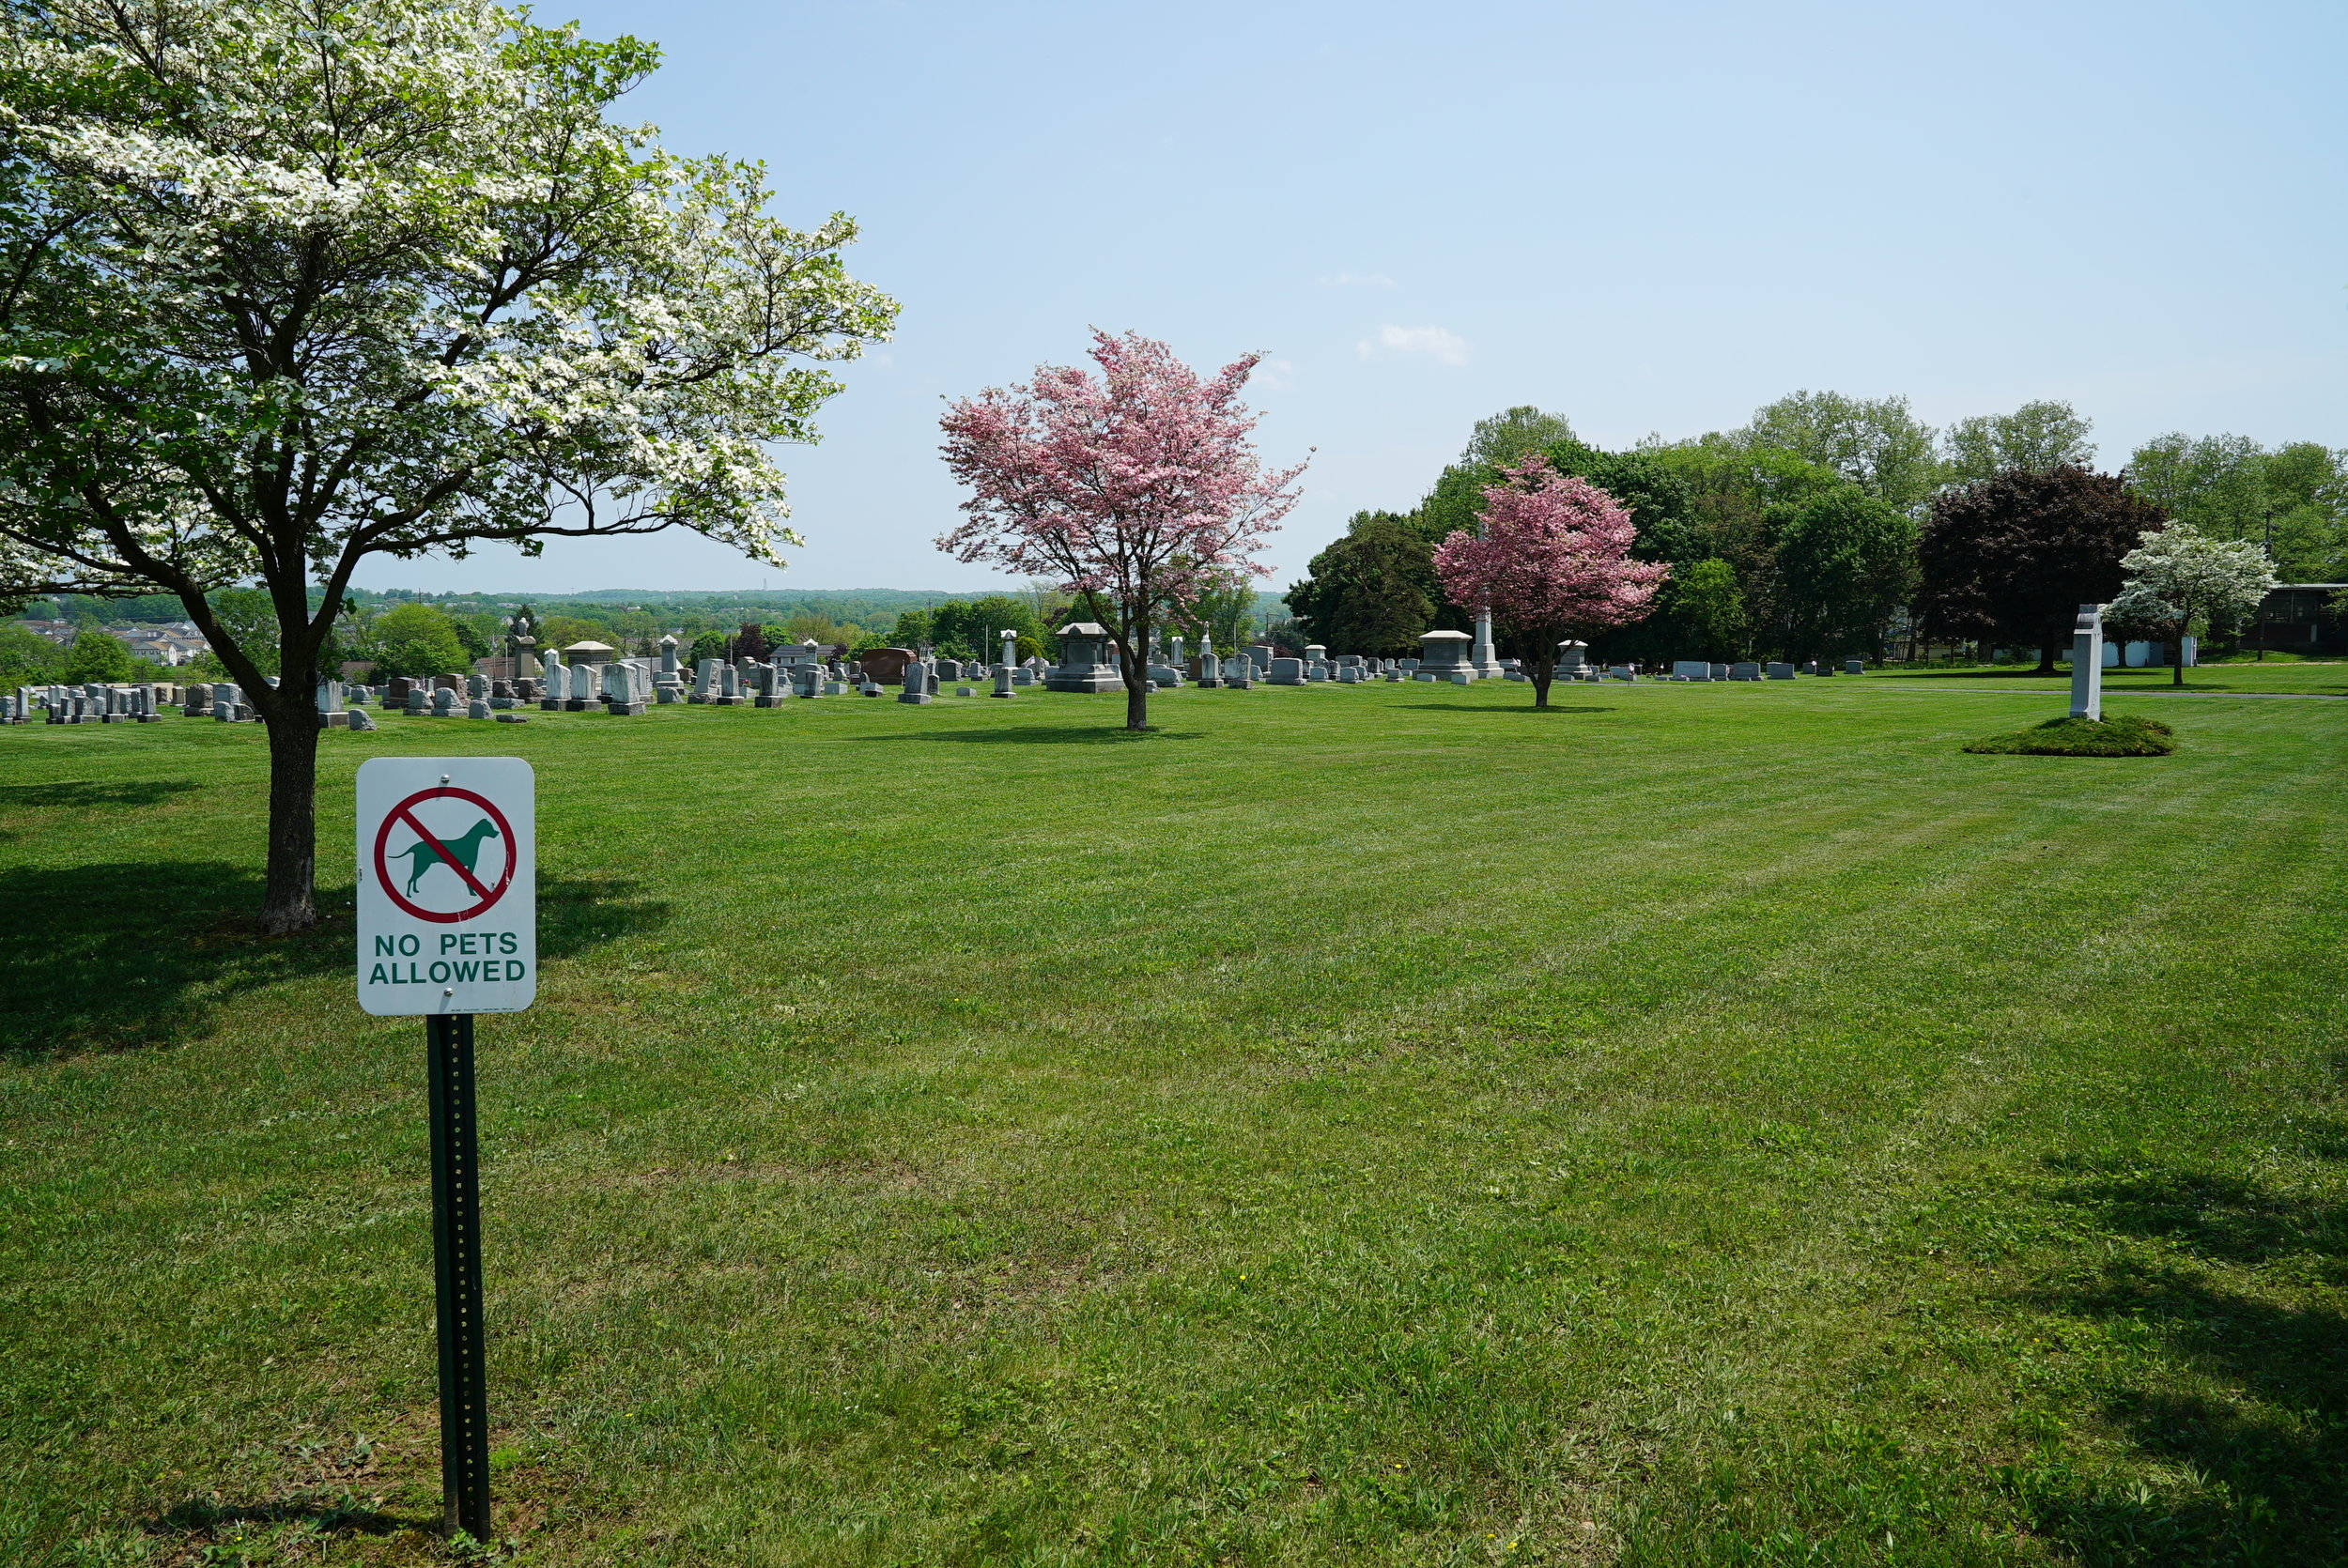 The well manicured grounds at St. Mark's Lutheran Cemetery. East Greenville/Pennsburg area of Montgomery County.